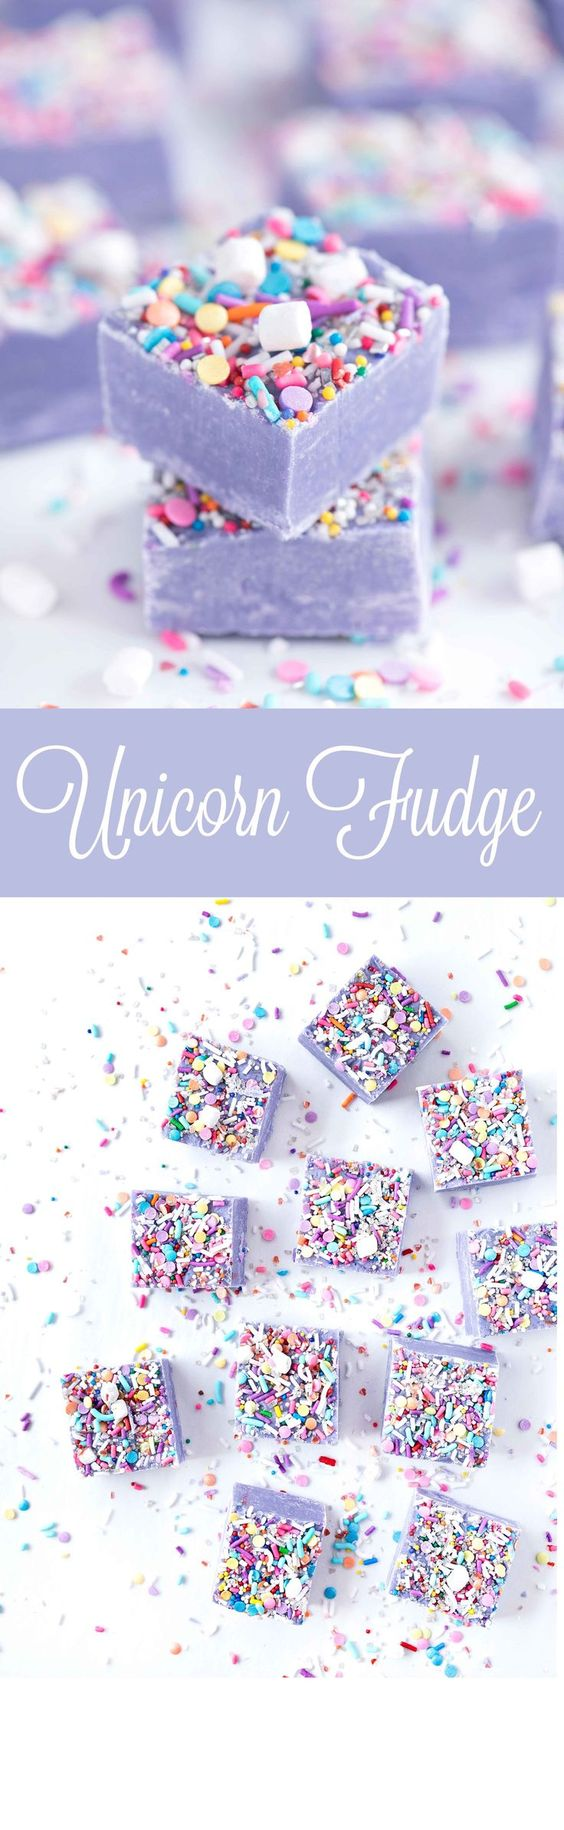 Unicorn desserts for a unicorn party: Unicorn Fudge